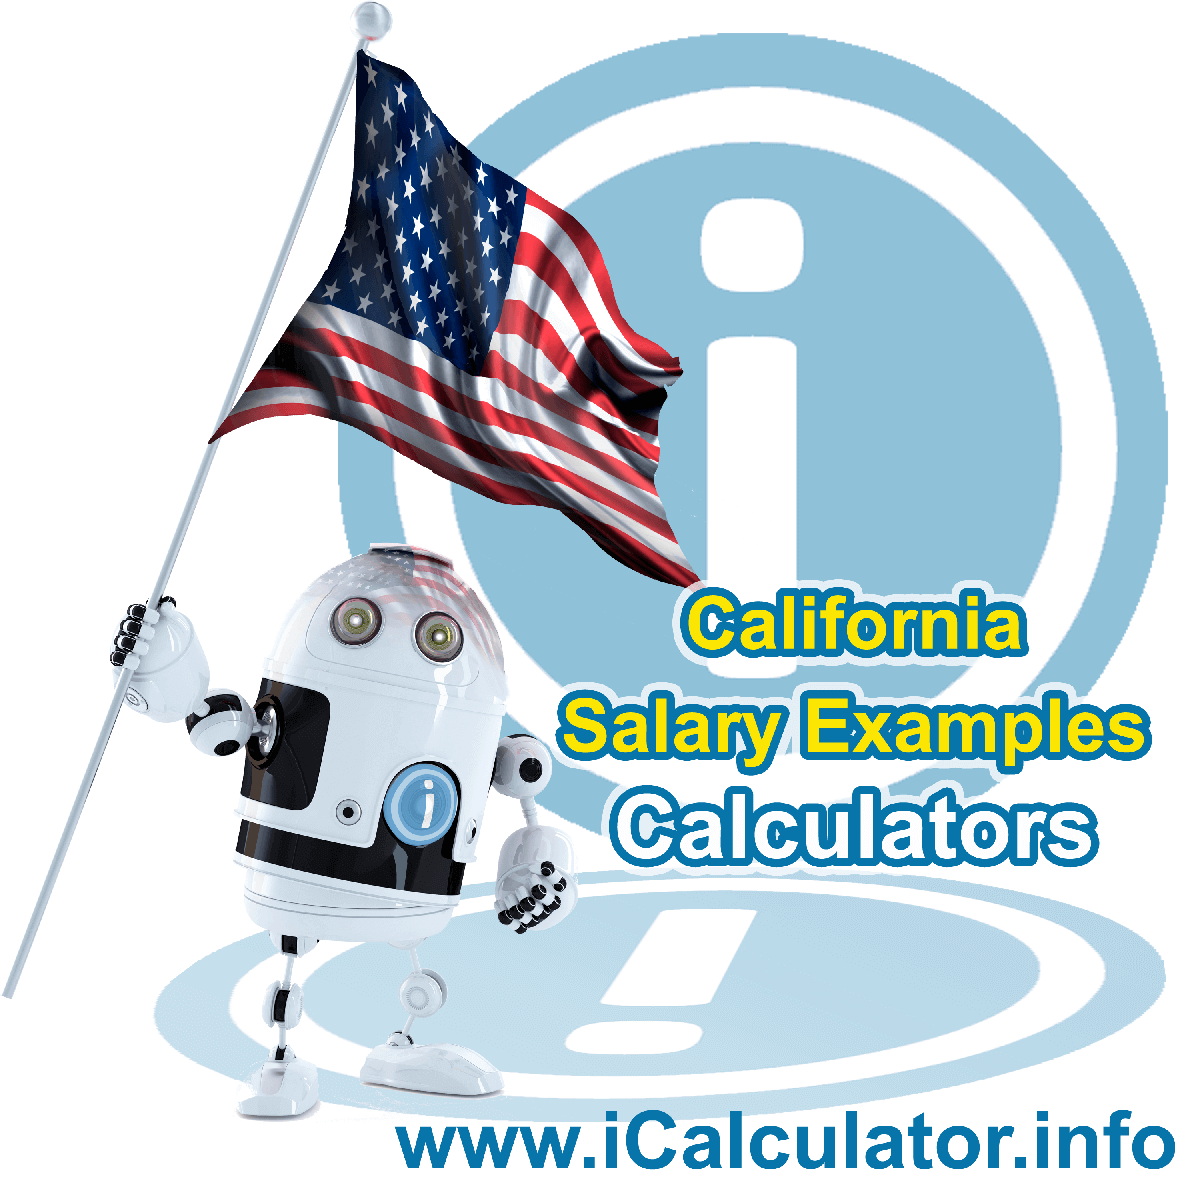 California Salary Example for $100,000.00 in 2020 | iCalculator | $100,000.00 salary example for employee and employer paying California State tincome taxes. Detailed salary after tax calculation including California State Tax, Federal State Tax, Medicare Deductions, Social Security, Capital Gains and other income tax and salary deductions complete with supporting California state tax tables